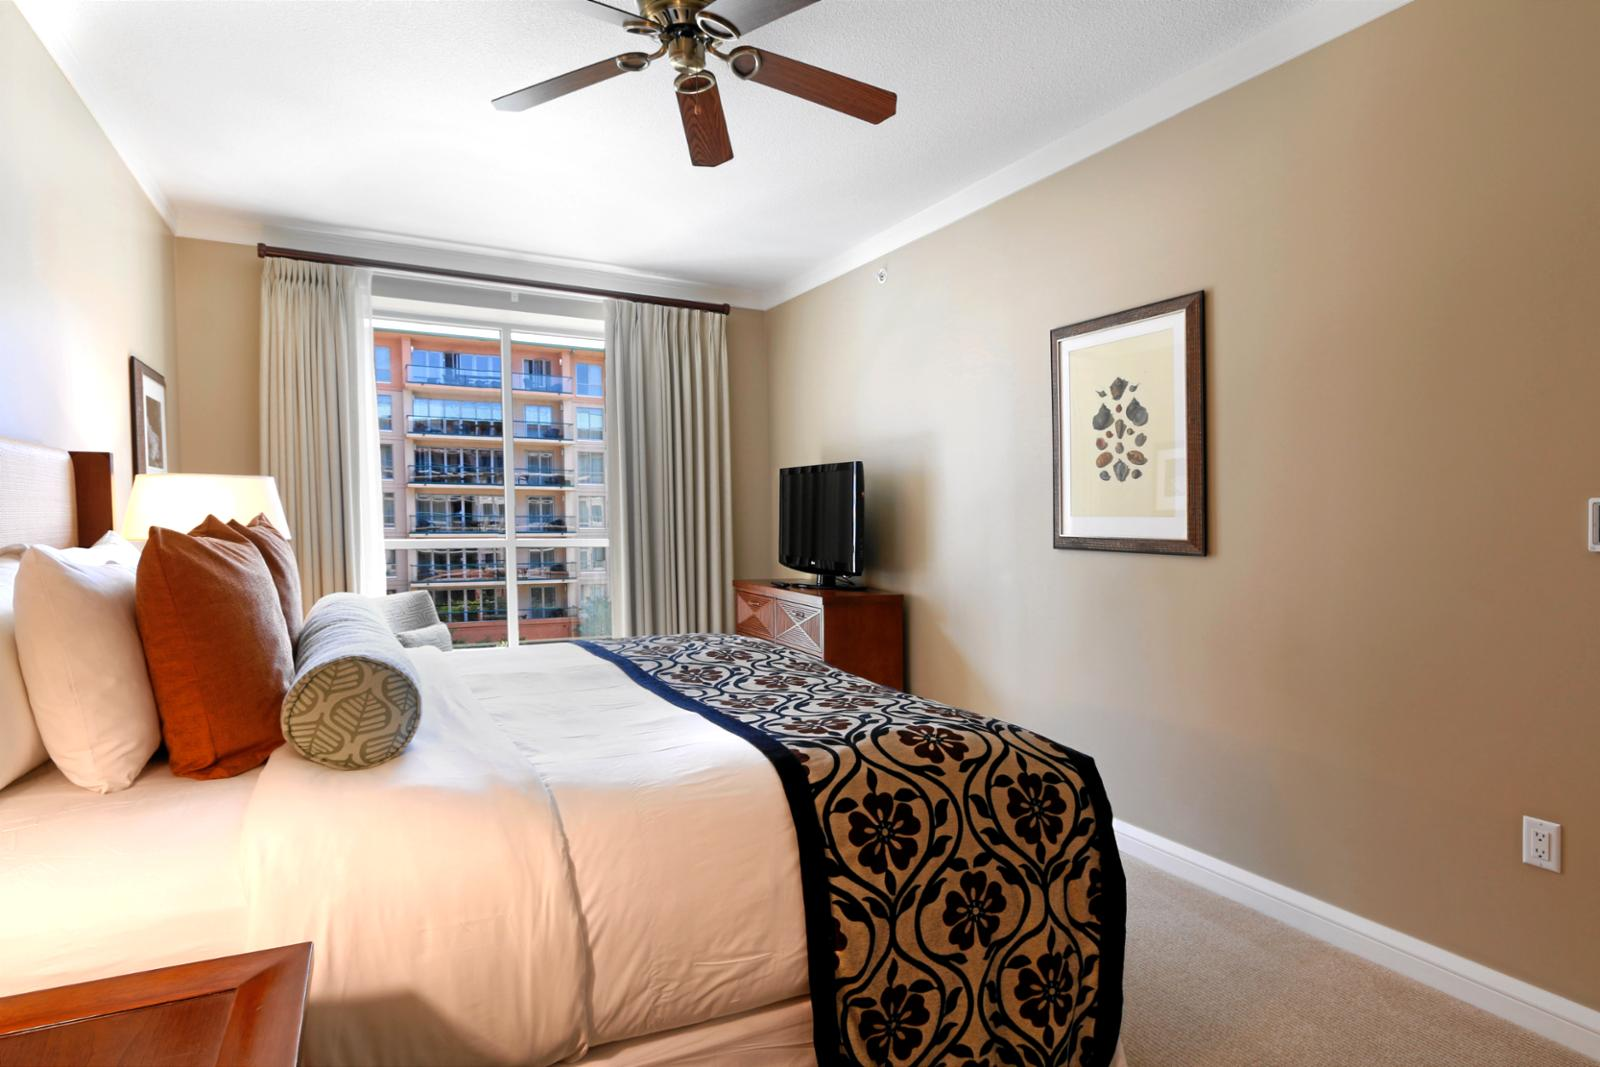 Guest bedroom has a vented window and large LG flatscreen TV for your enjoyment.